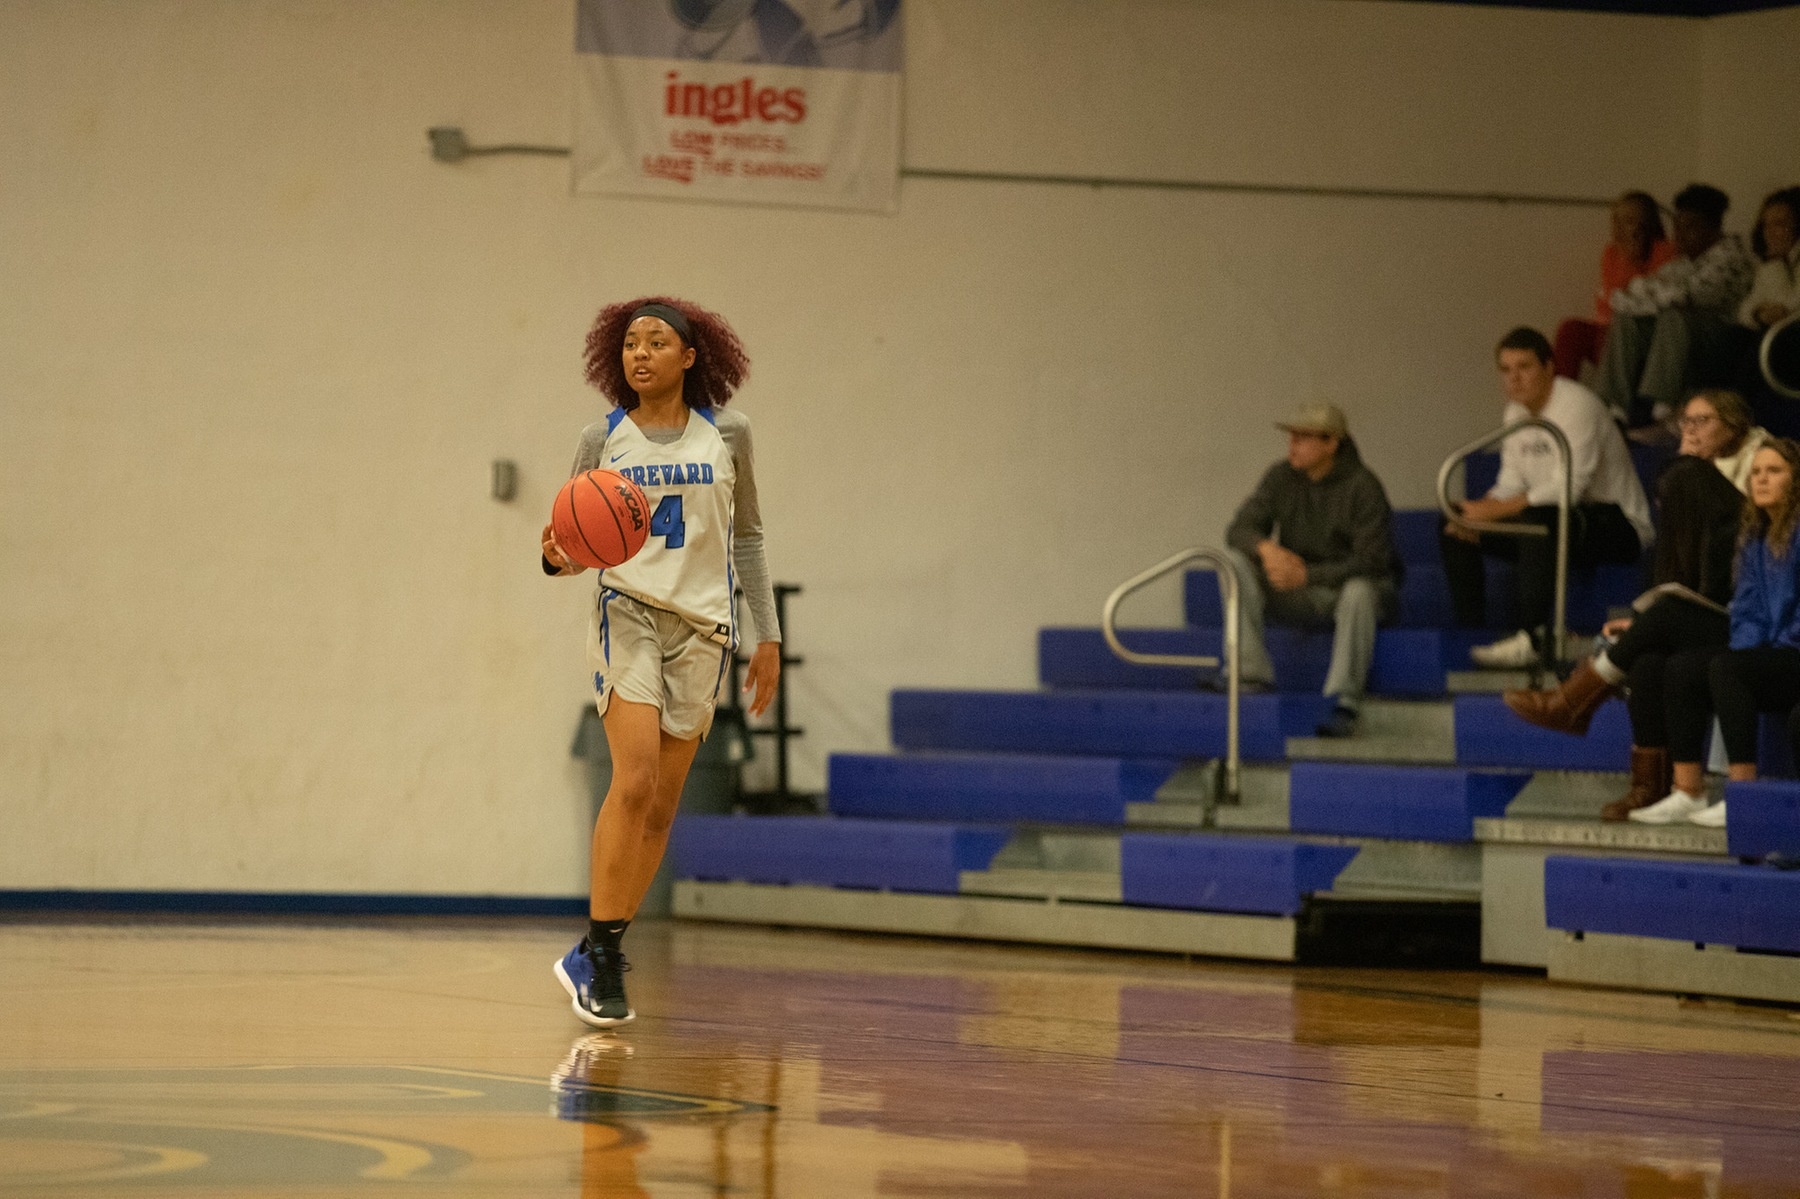 Freshman guard Mekindia Martin scored 10 points to help lead Brevard's efforts at Berry (Photo courtesy of Thom Kennedy '21).